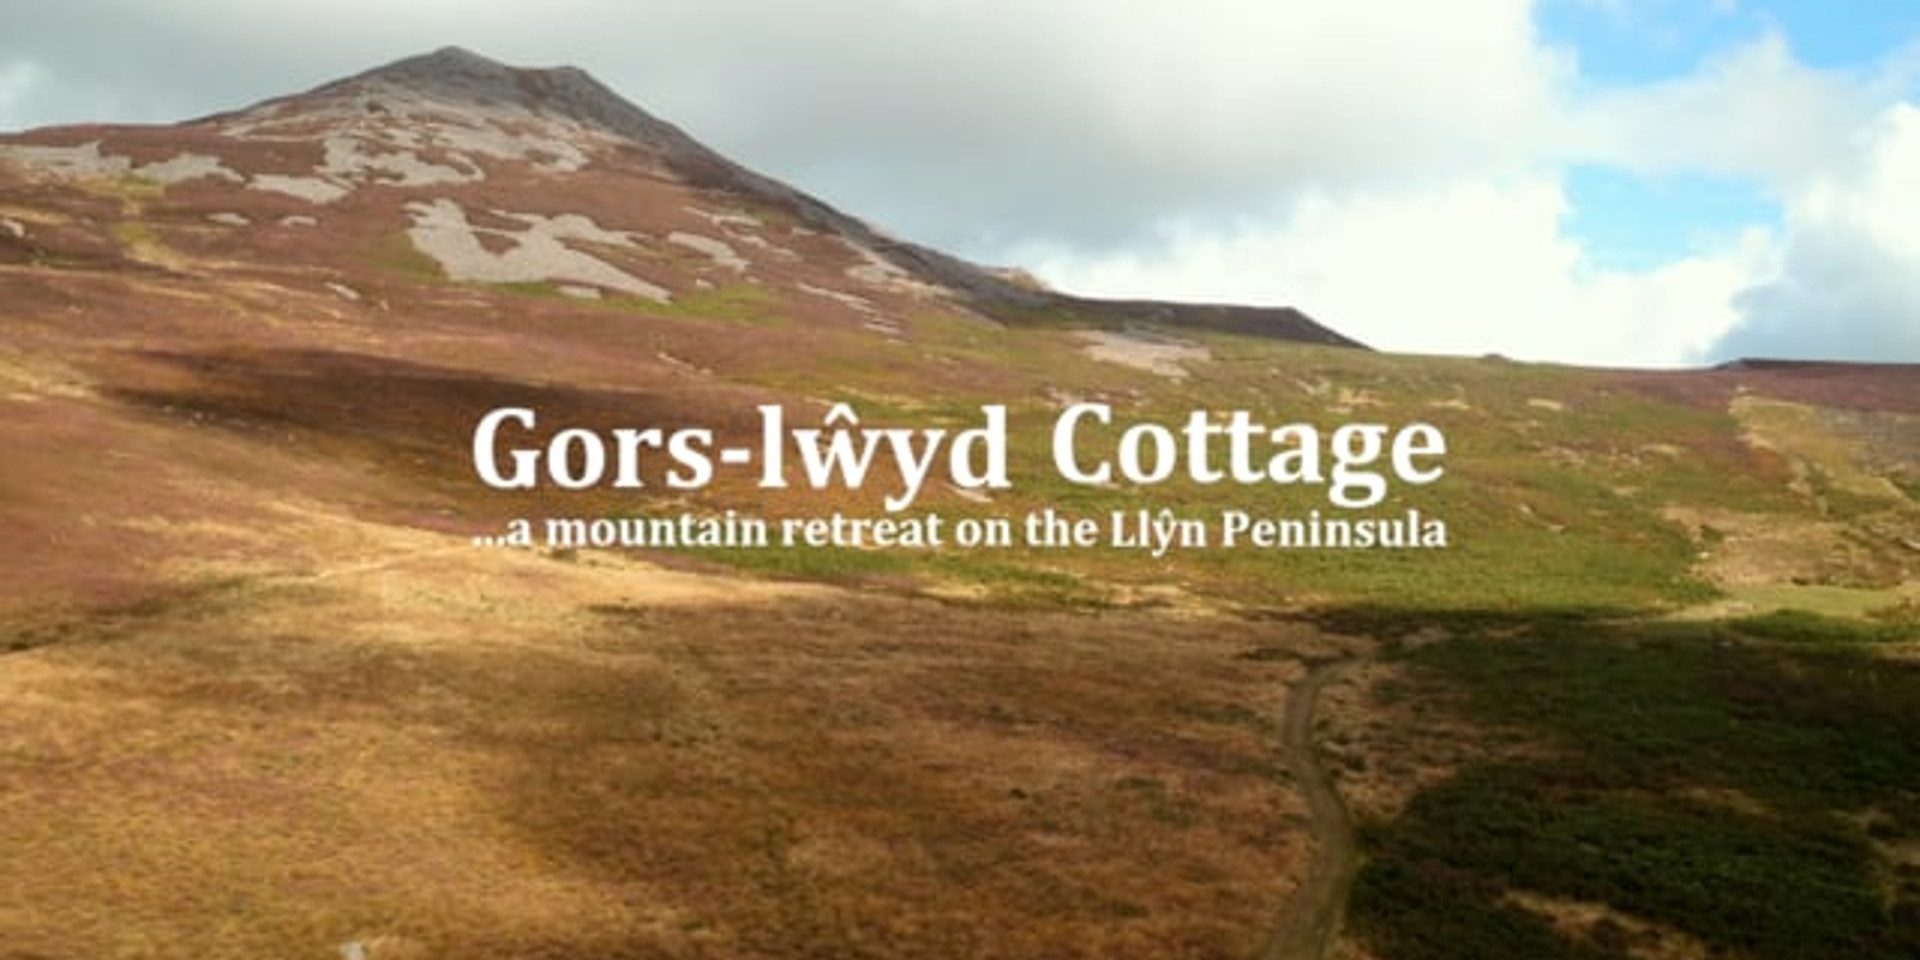 Property - Gors-lwyd Cottage